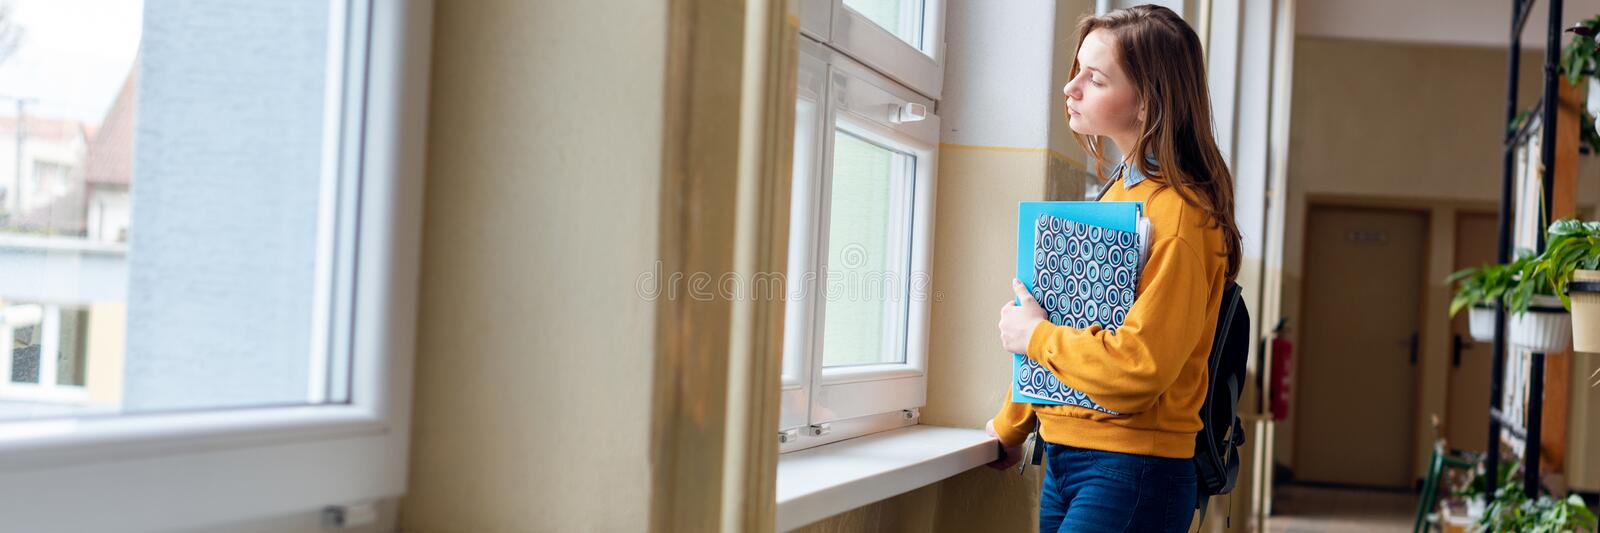 Young attractive female high school student standing by the window in the hallway at her school alone. stock photo